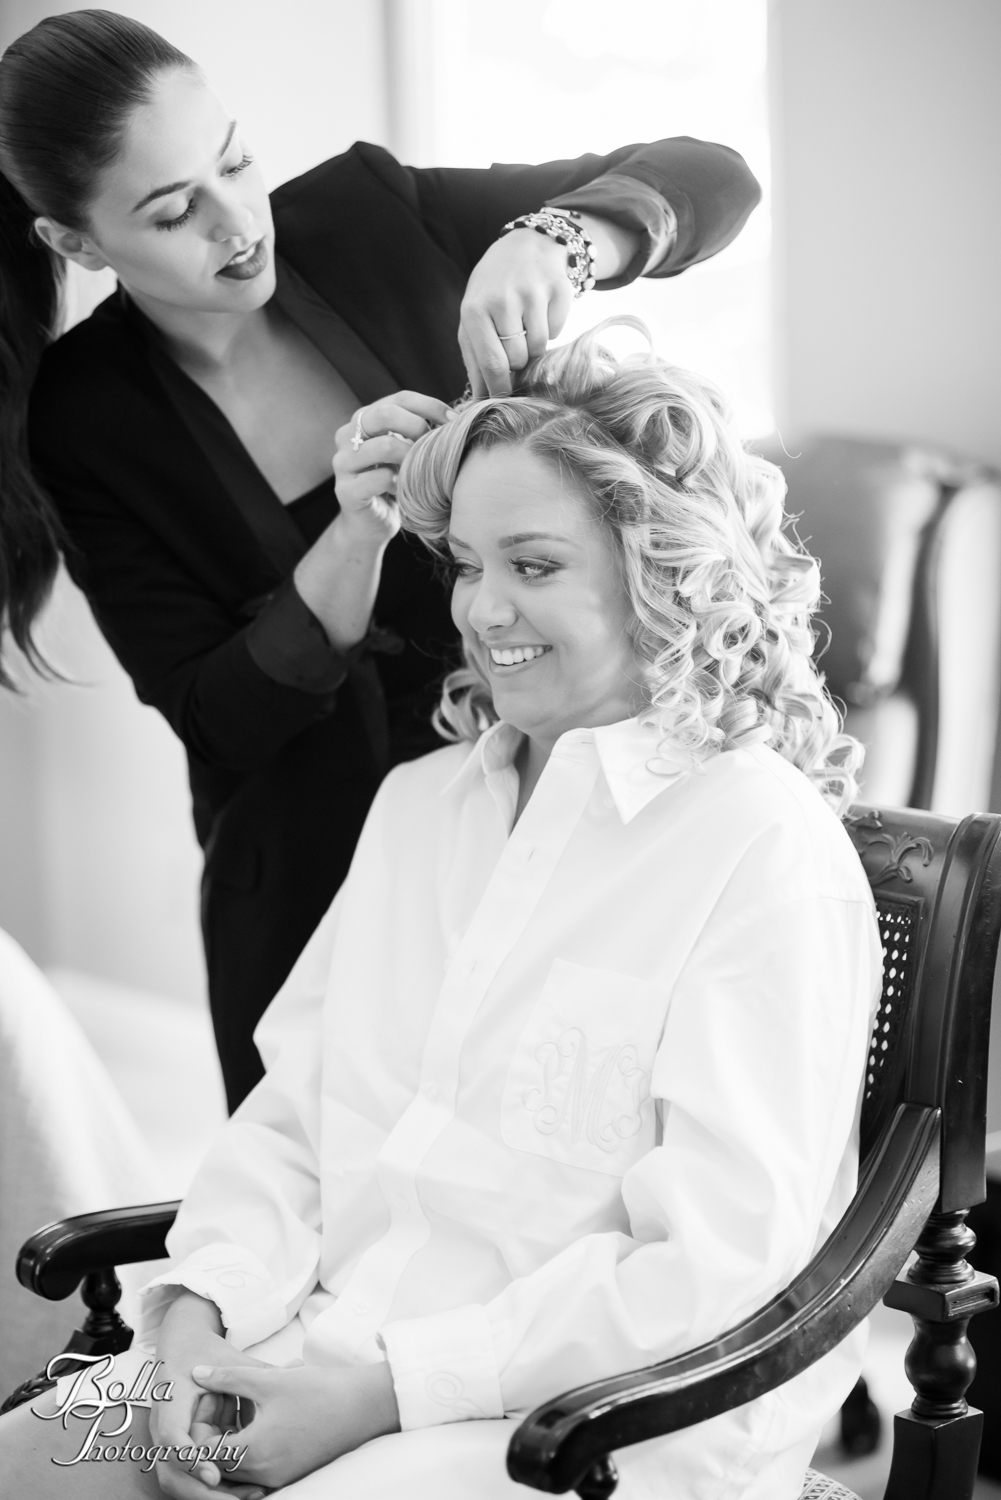 Bolla_Photography_St_Louis_wedding_photographer-0041.jpg